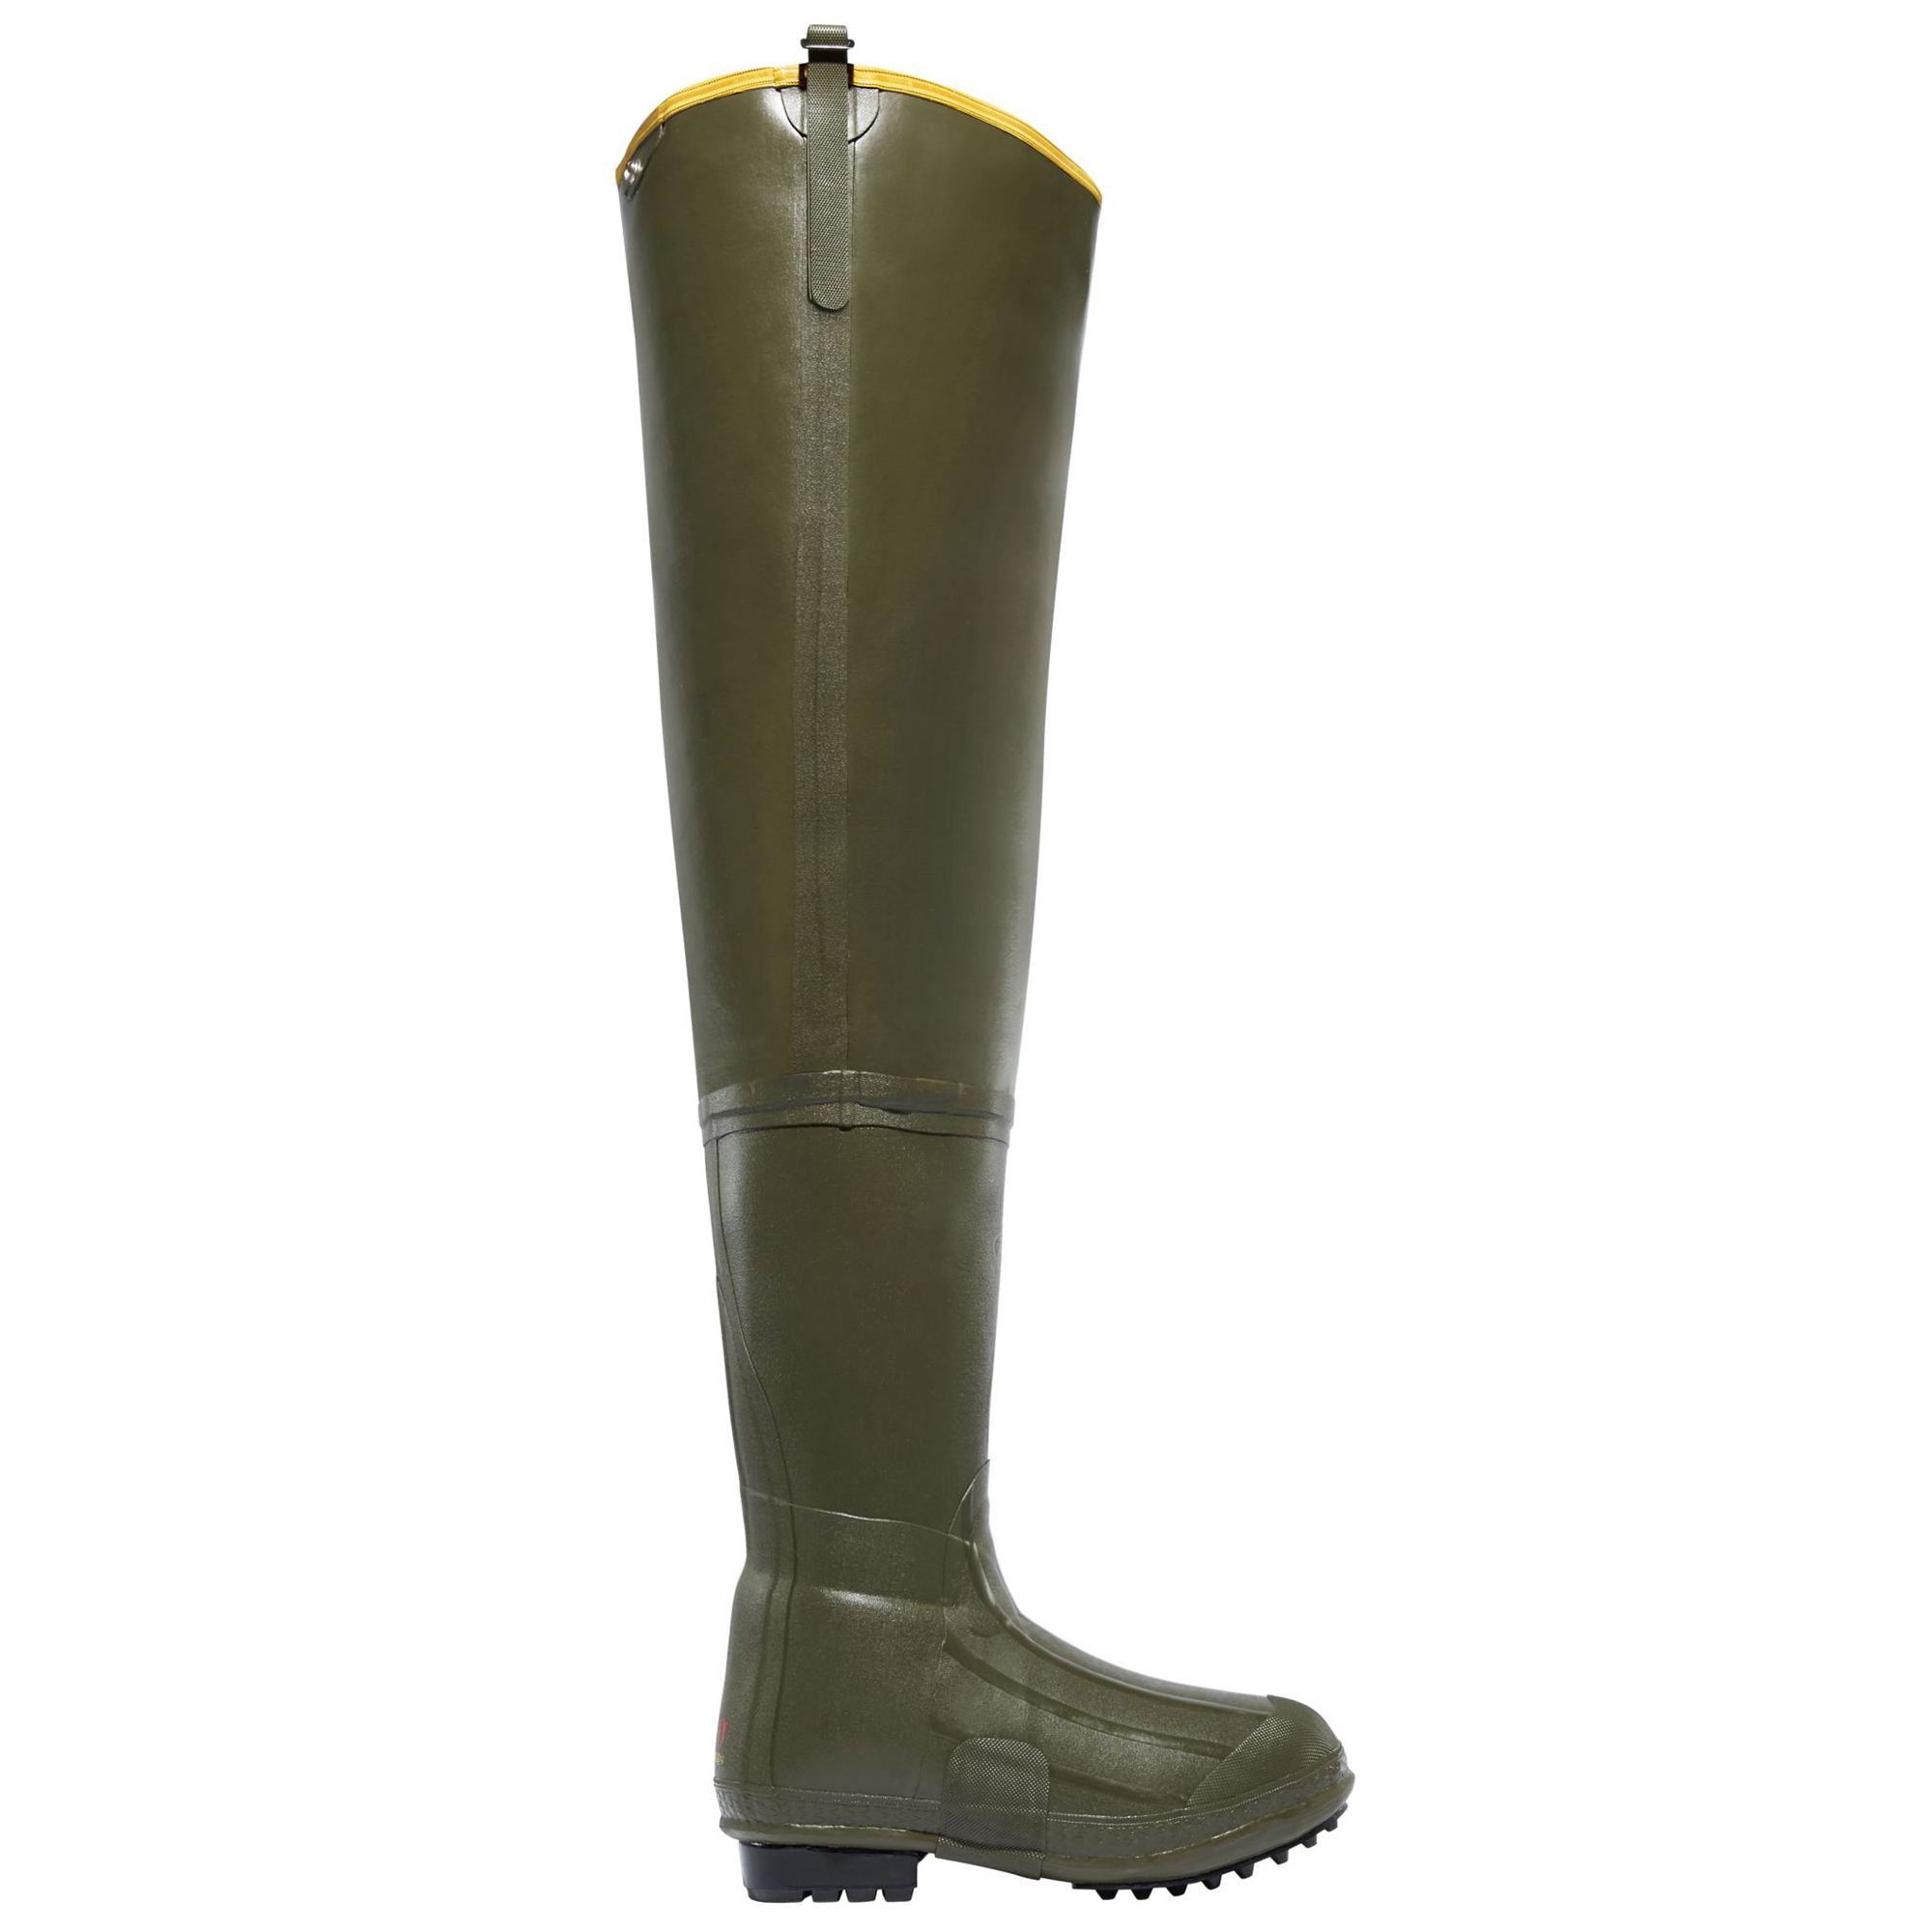 LaCrosse Men's Big Chief 32″ 600g Insulated Rubber Boot